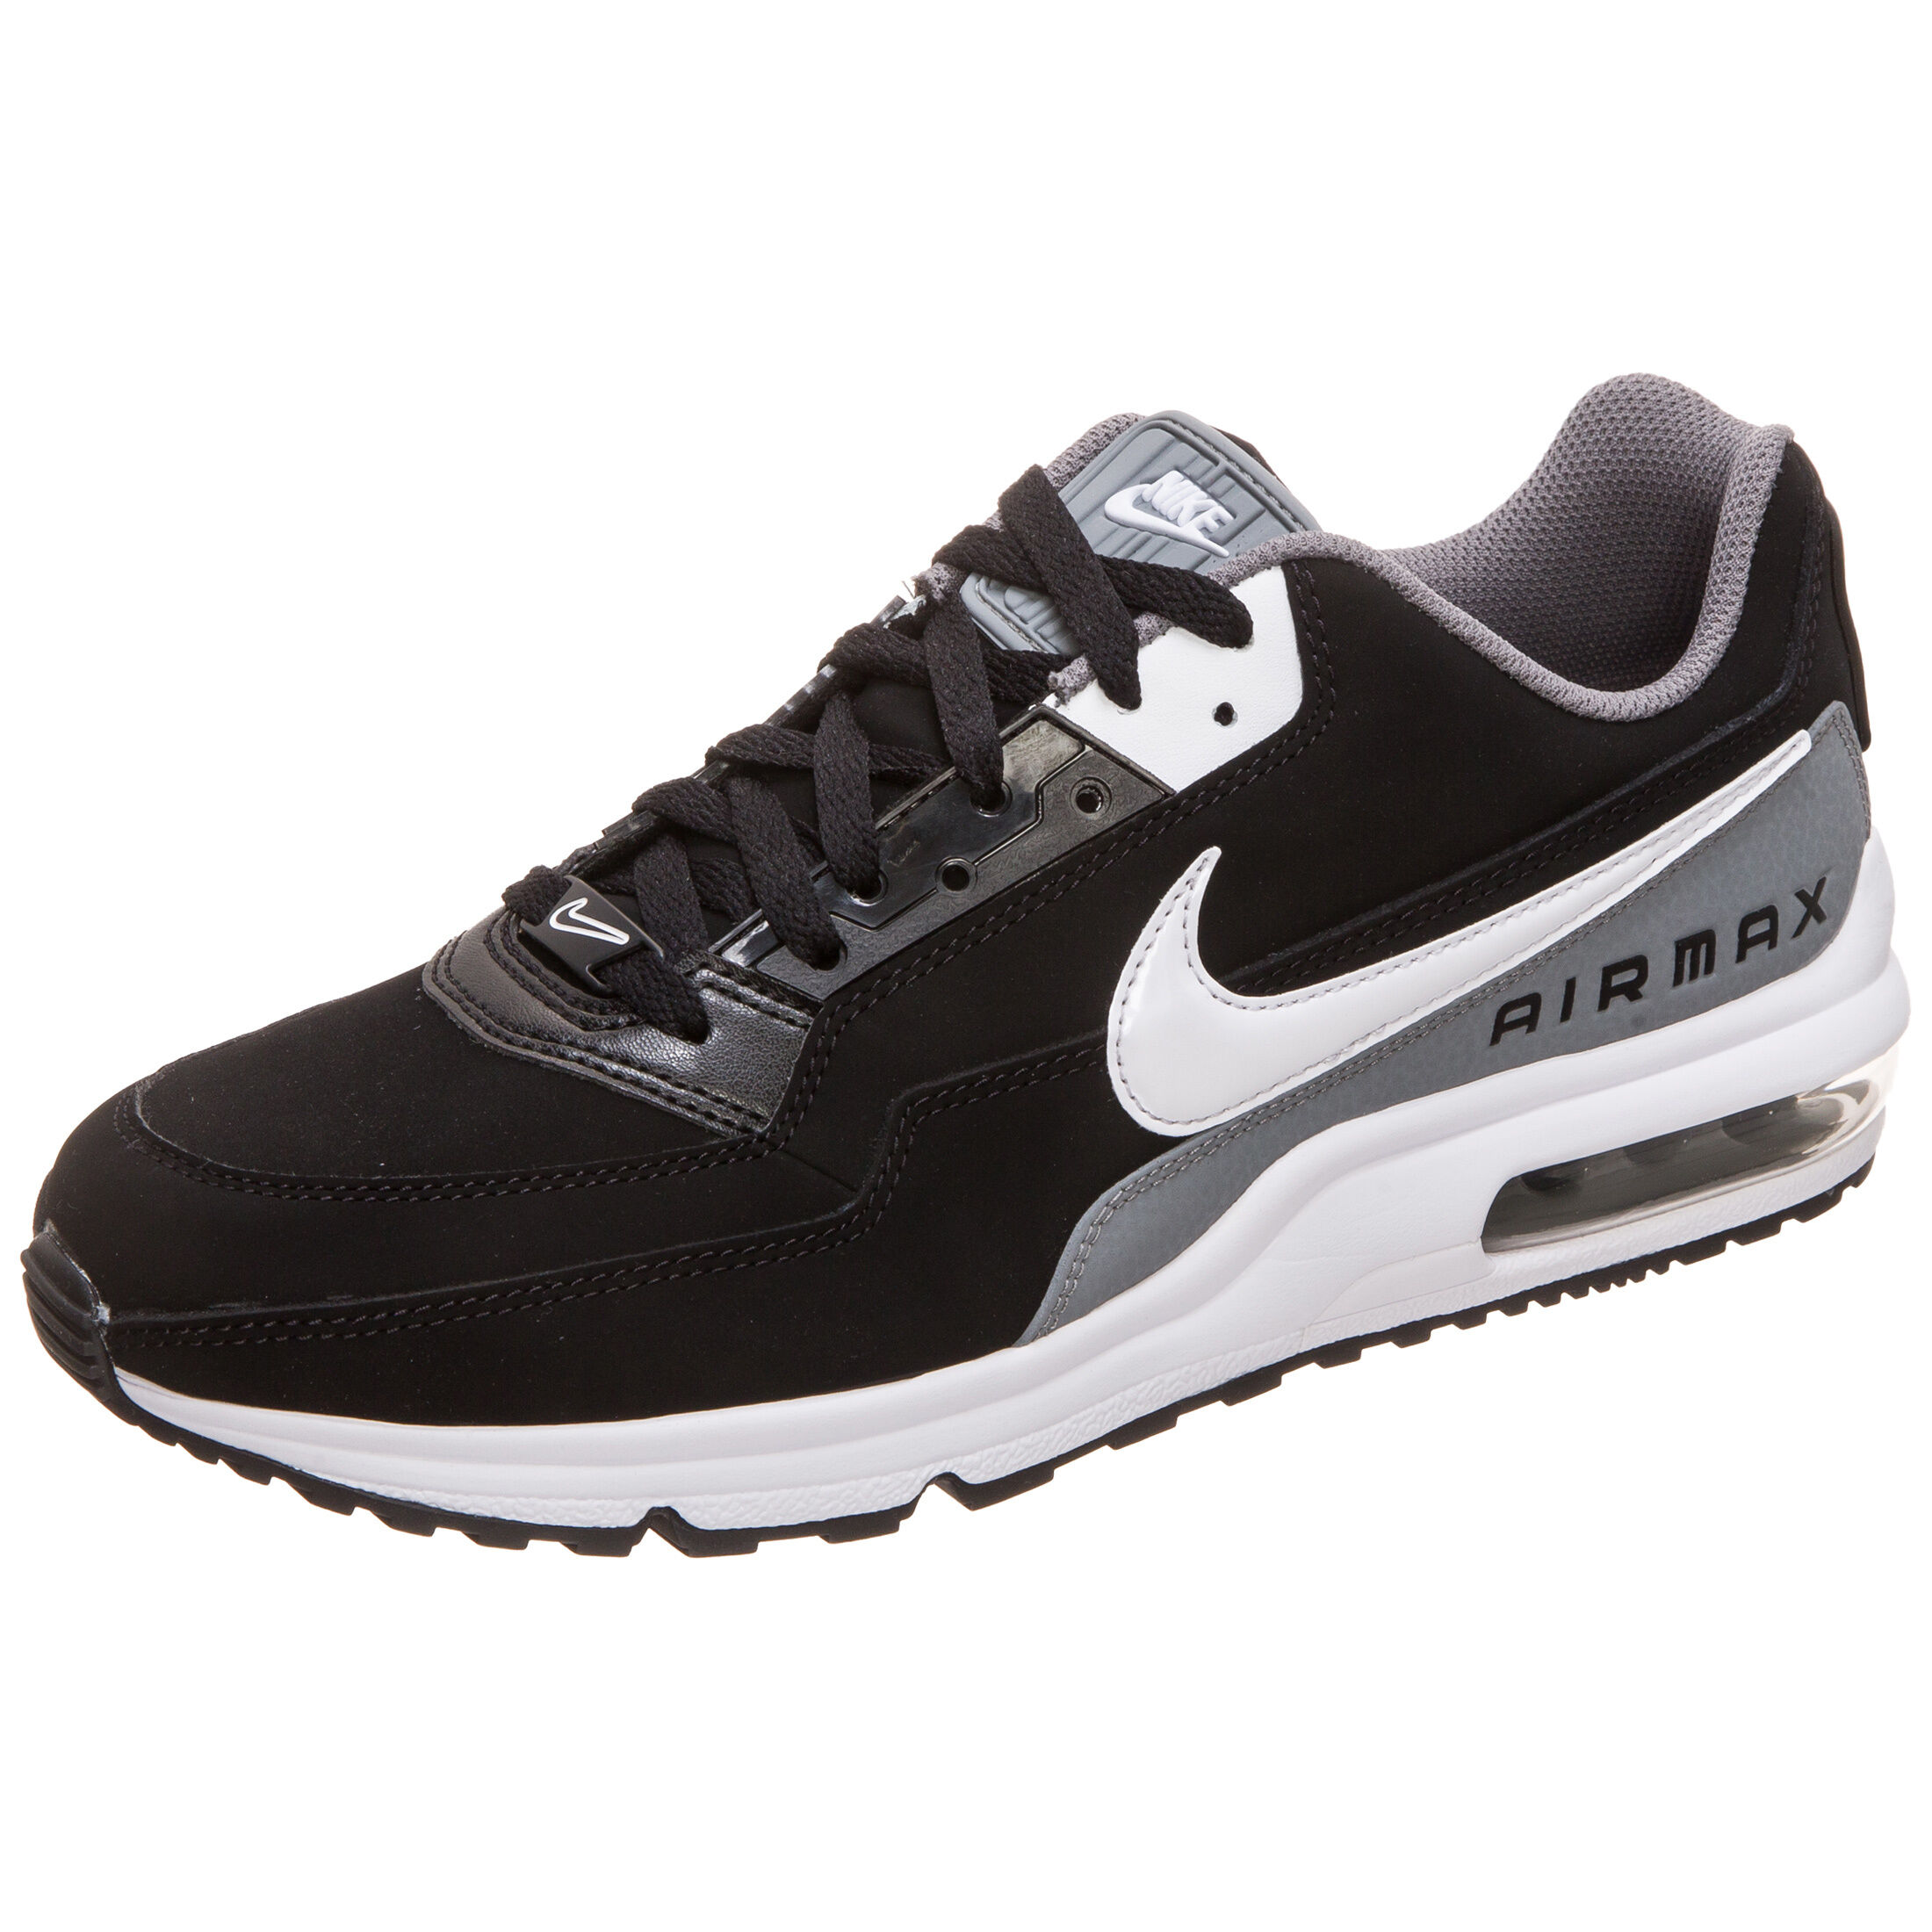 Outfitter Sneaker Air Bei Shop Max Nike Lifestyle FfpxwqAw7